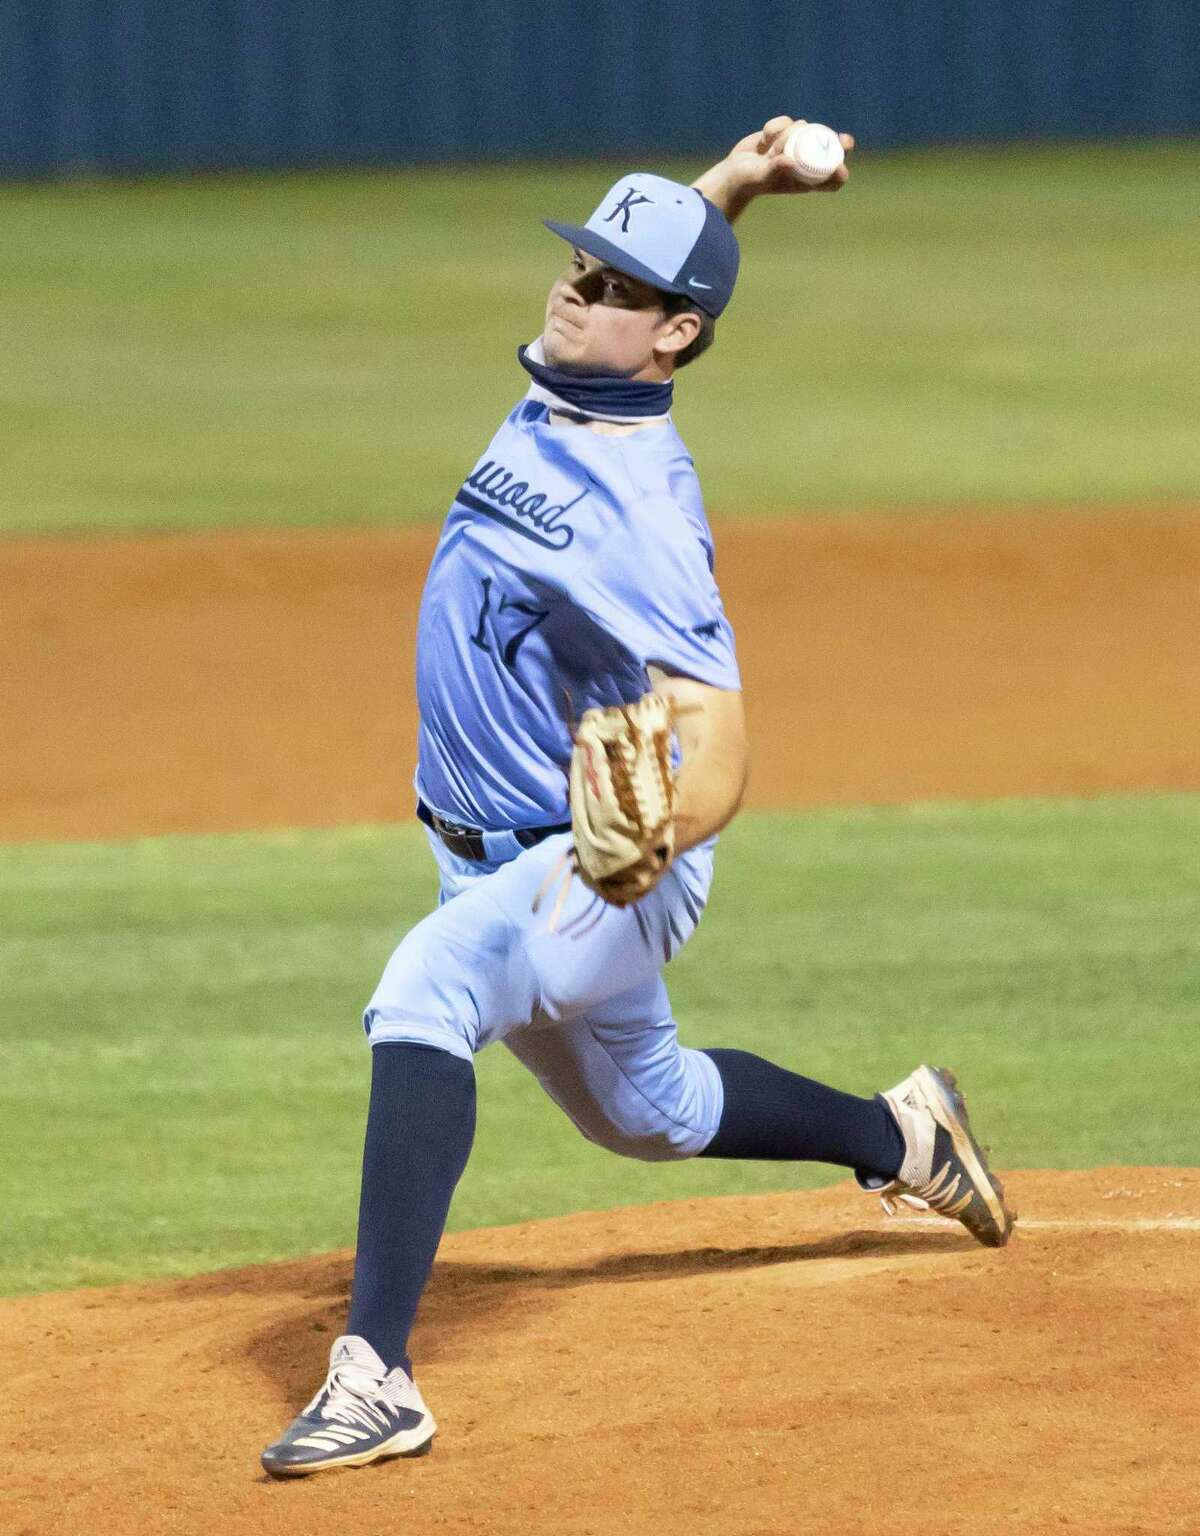 Kingwood pitcher Trapper Pierce (17) pitches the ball during the fourth inning of a District 21-6A baseball game against Summer Creek at Kingwood High School, Tuesday, April 27, 2021, in Kingwood.